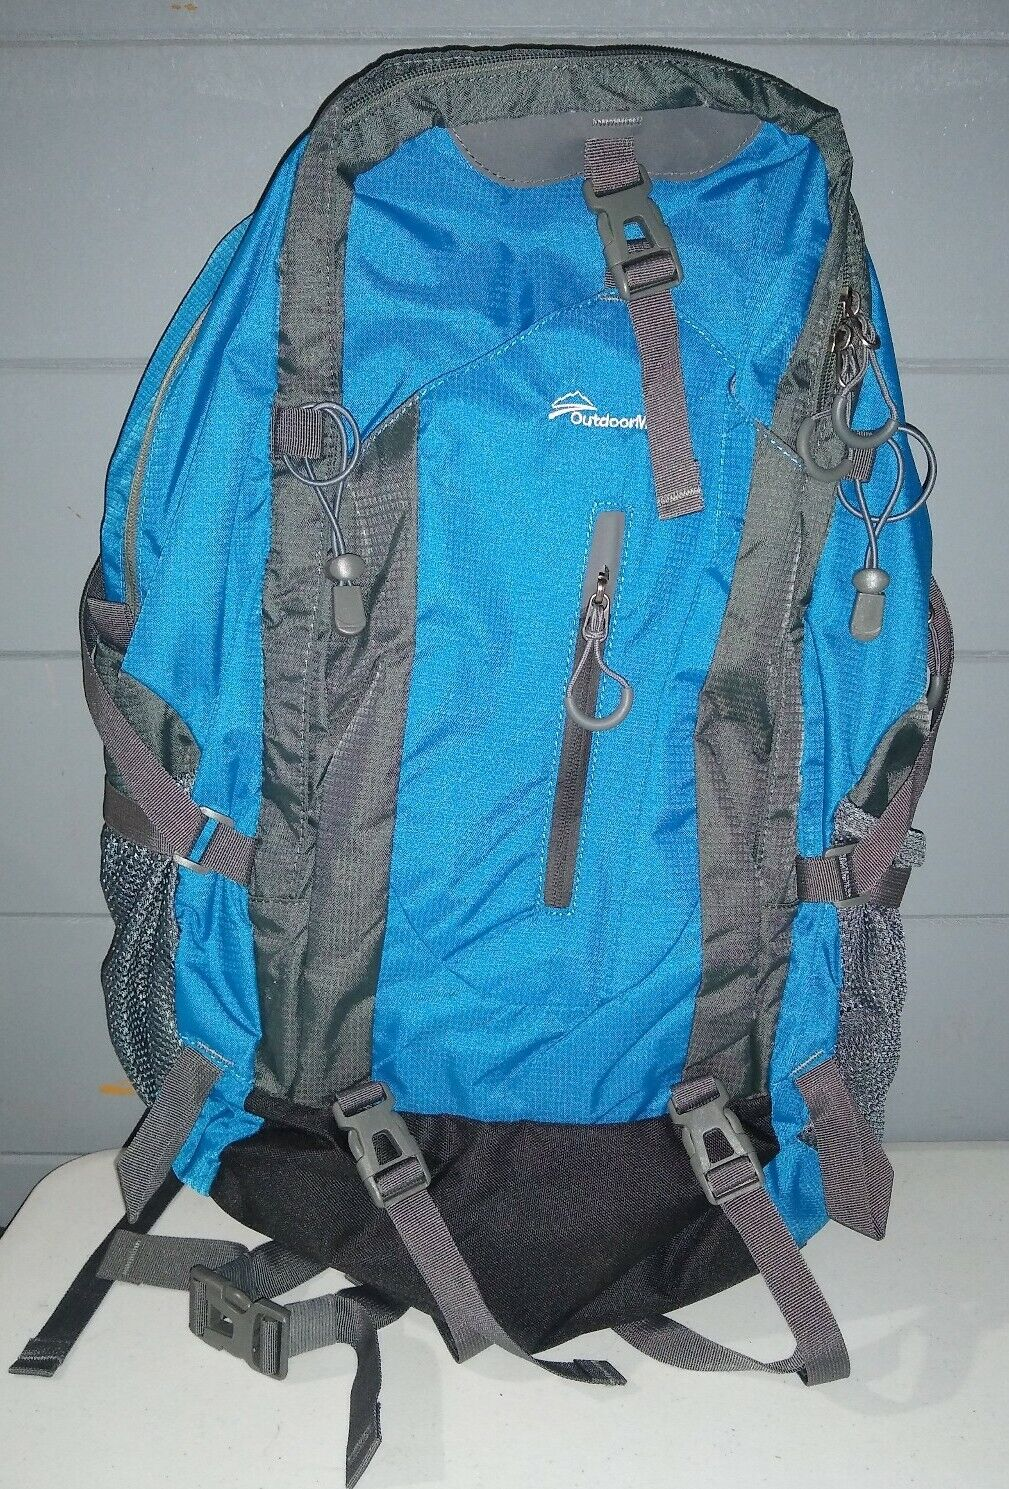 OutdoorMaster Blue Backpack Travel Hiking Camping Bag NWOT rainfall evidence - s l1600